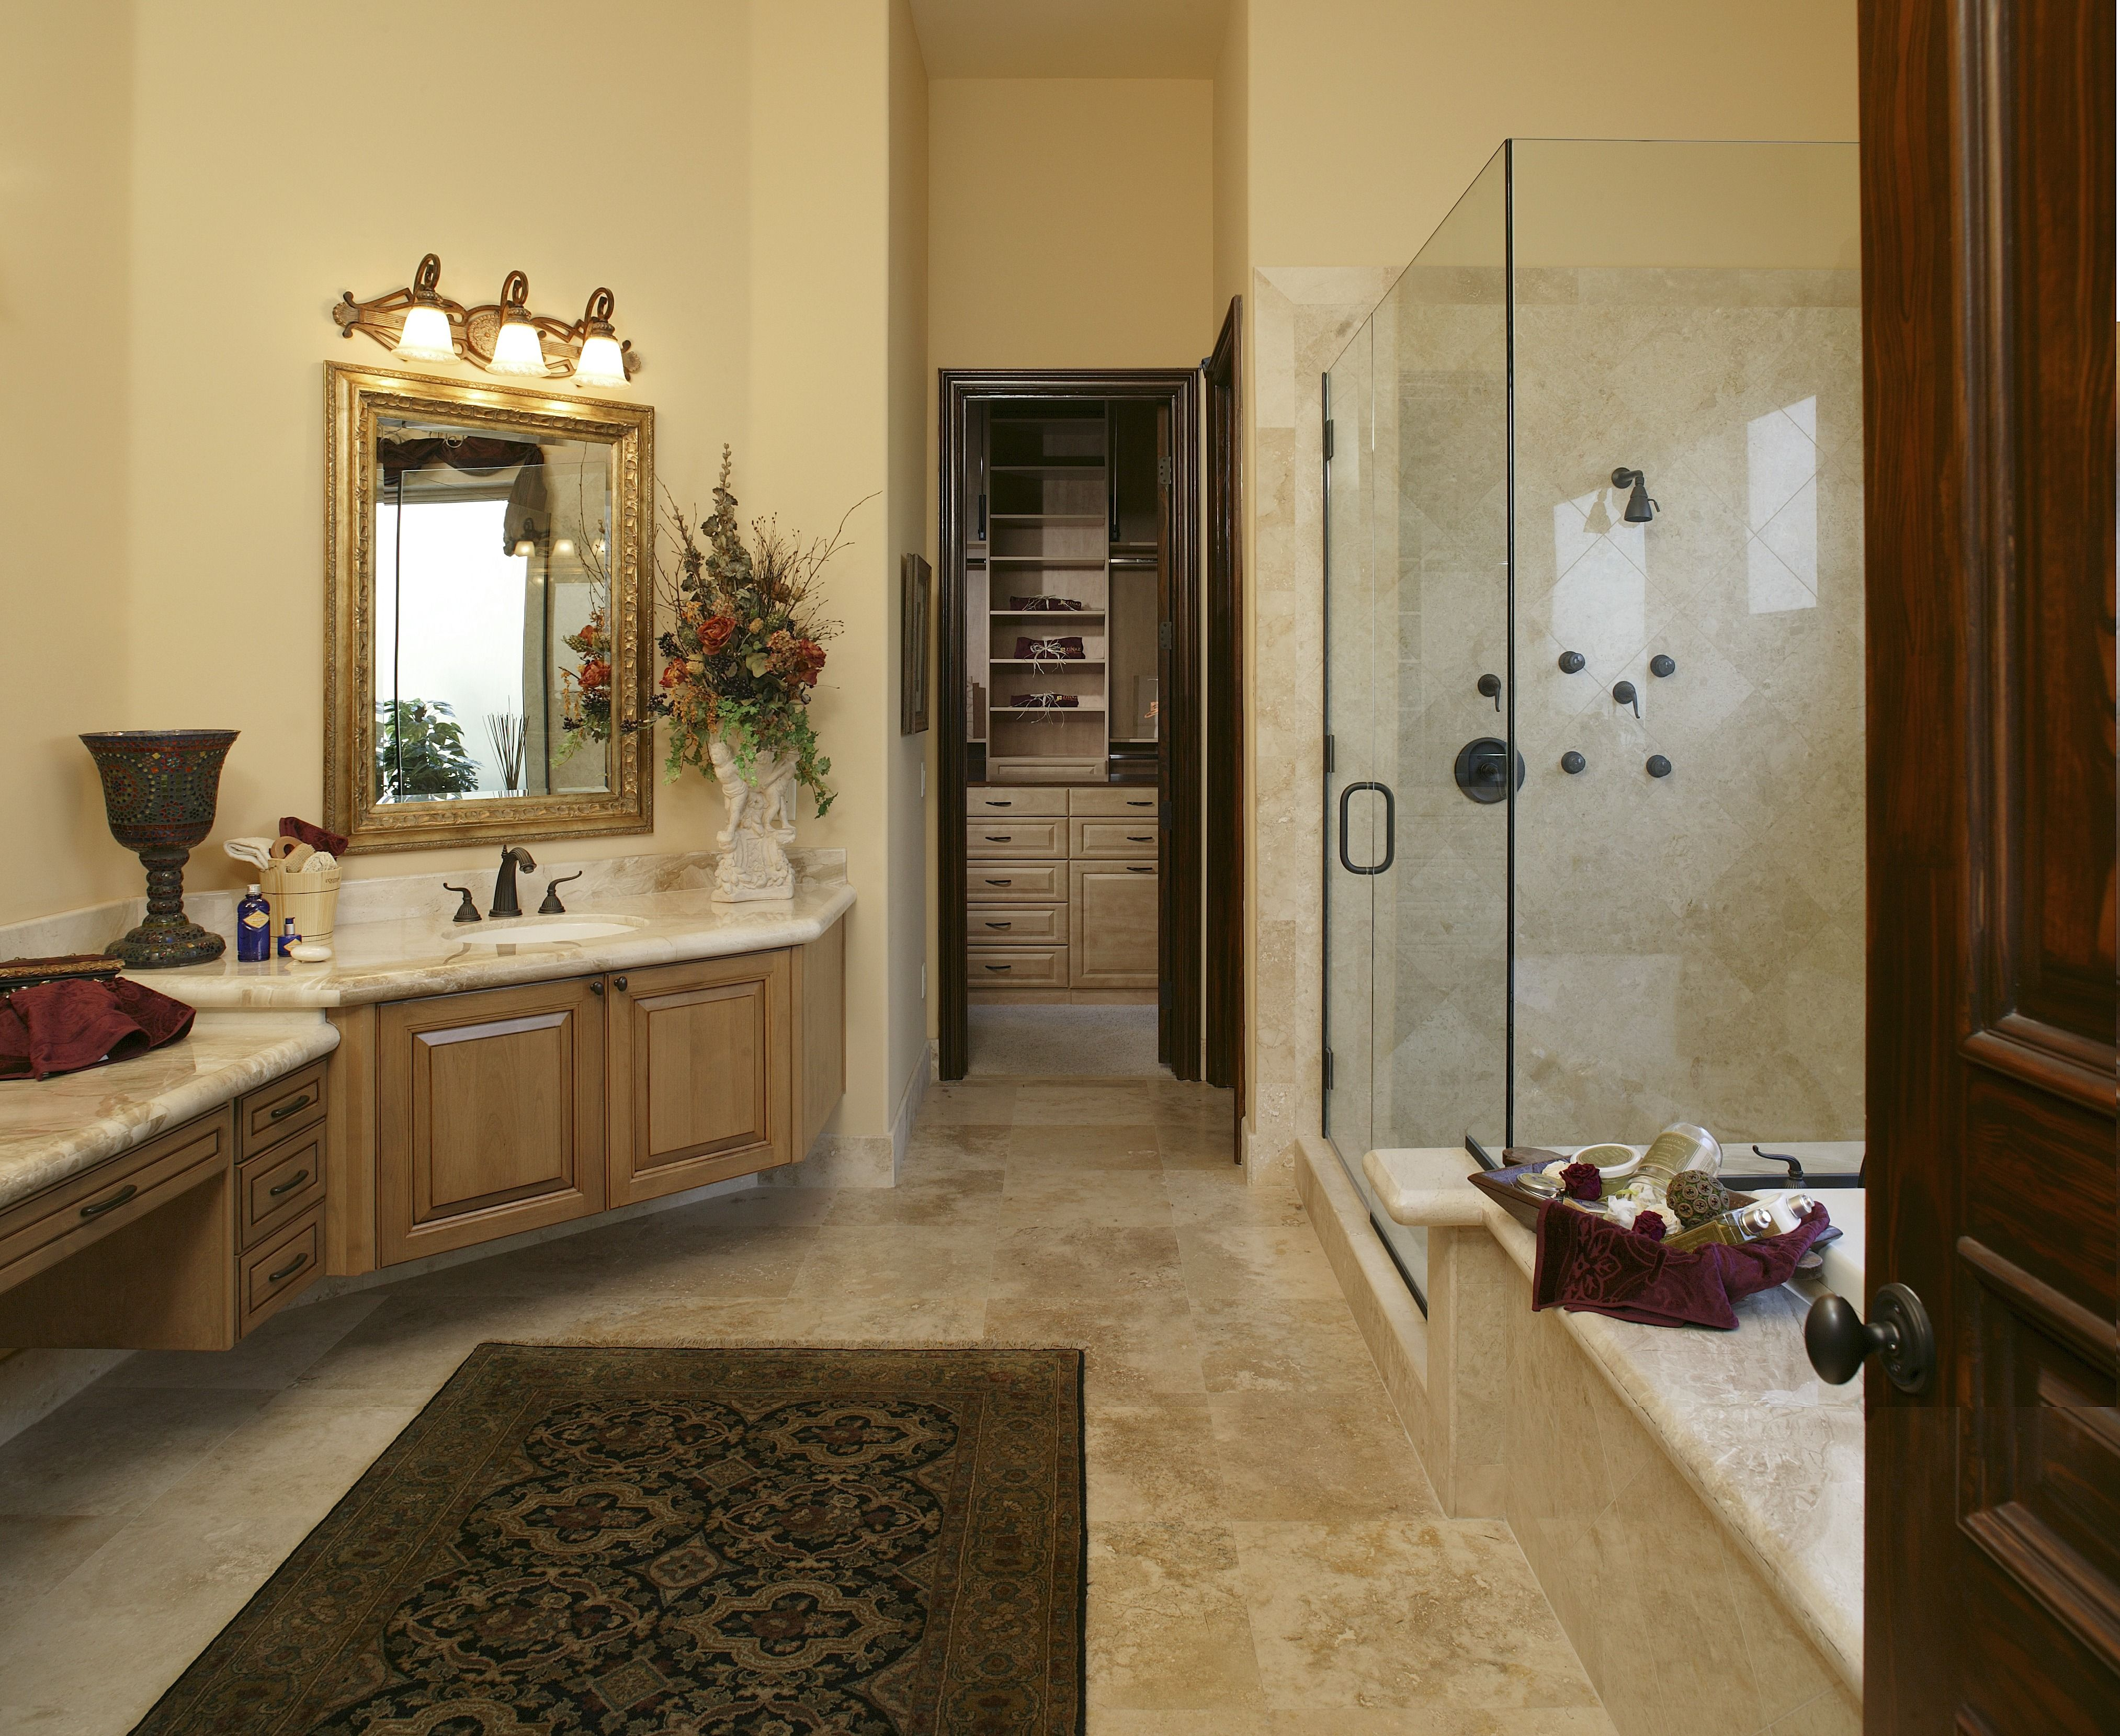 The neutral walls, tile floor and glass shower door make this ...